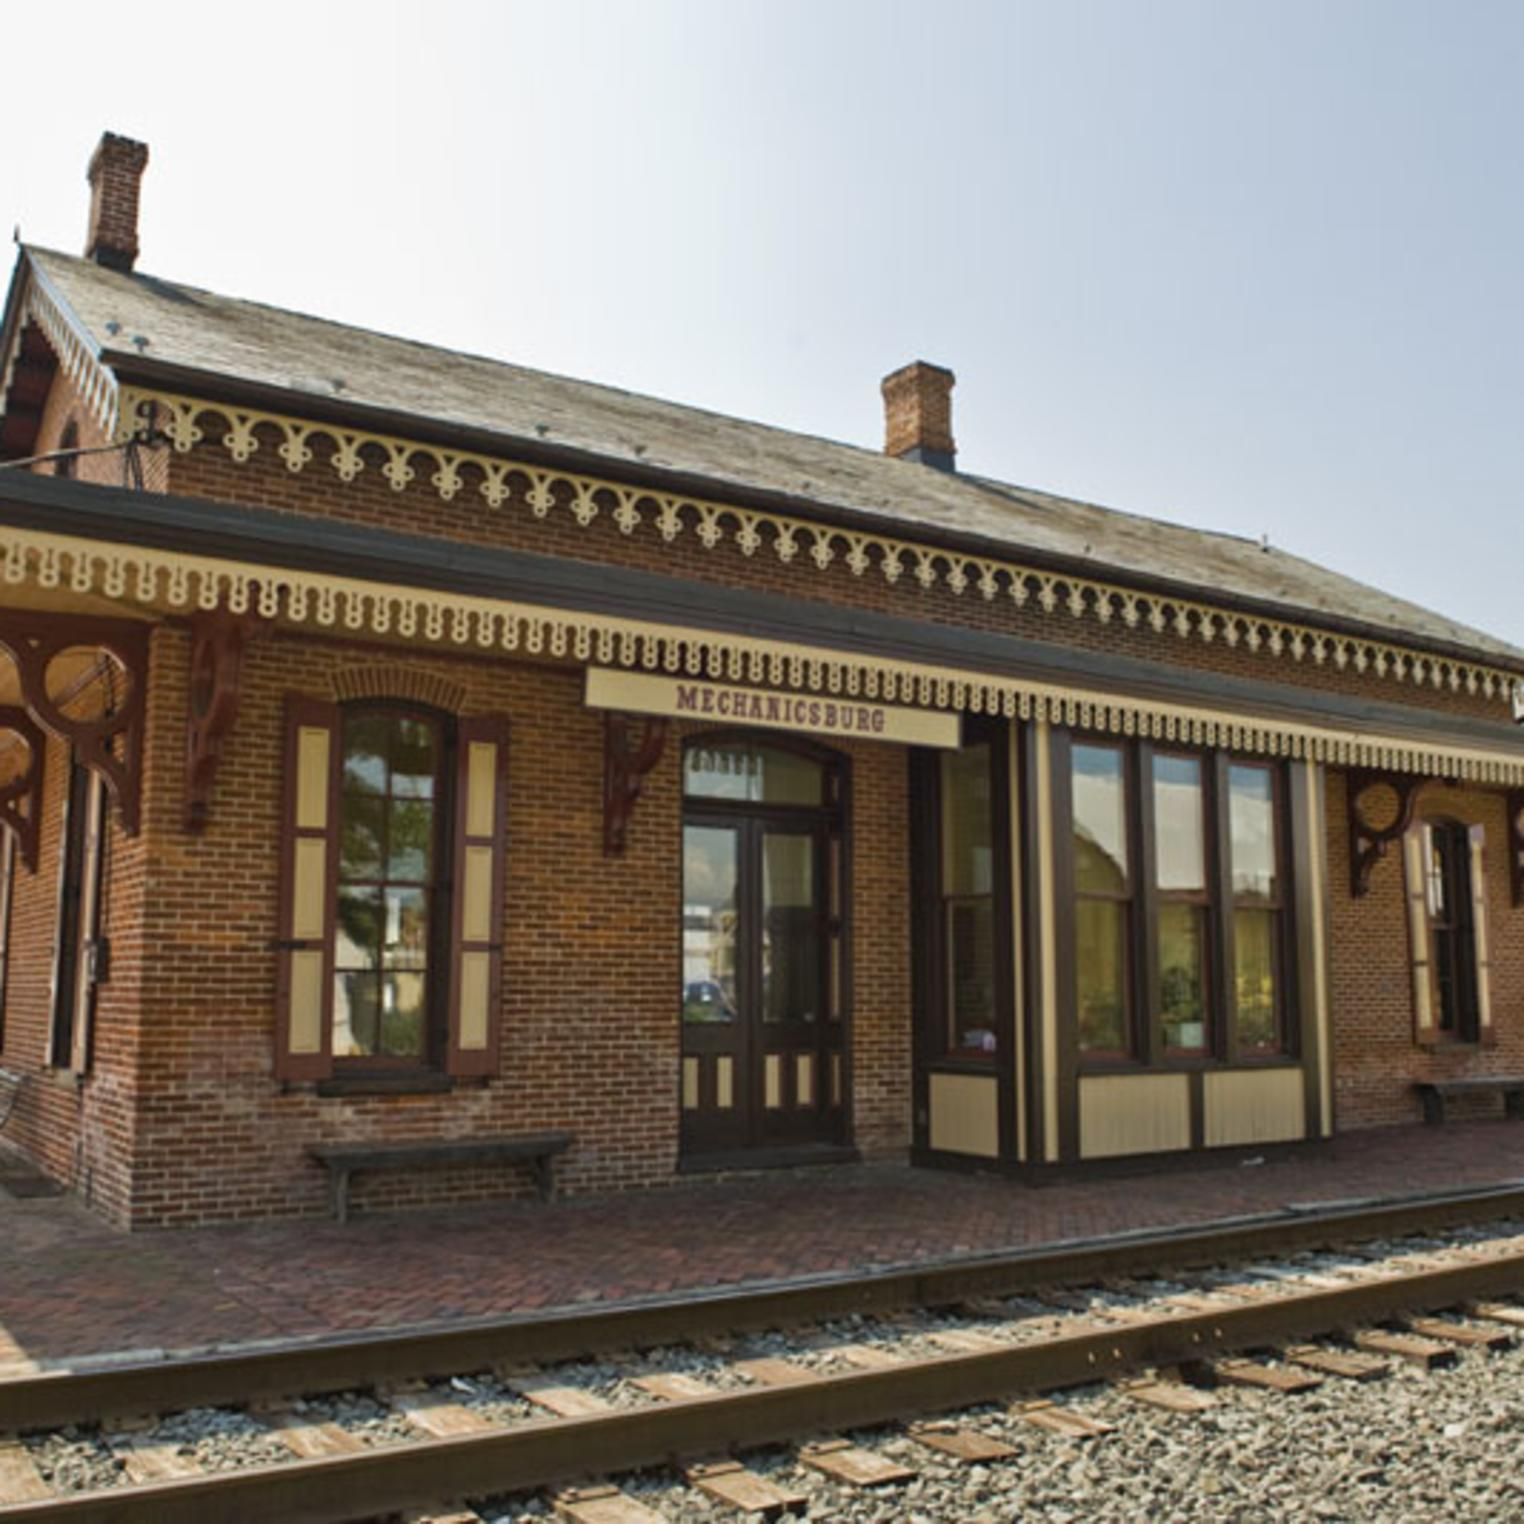 Passenger Station, Part of the Mechanicsburg Museum Association